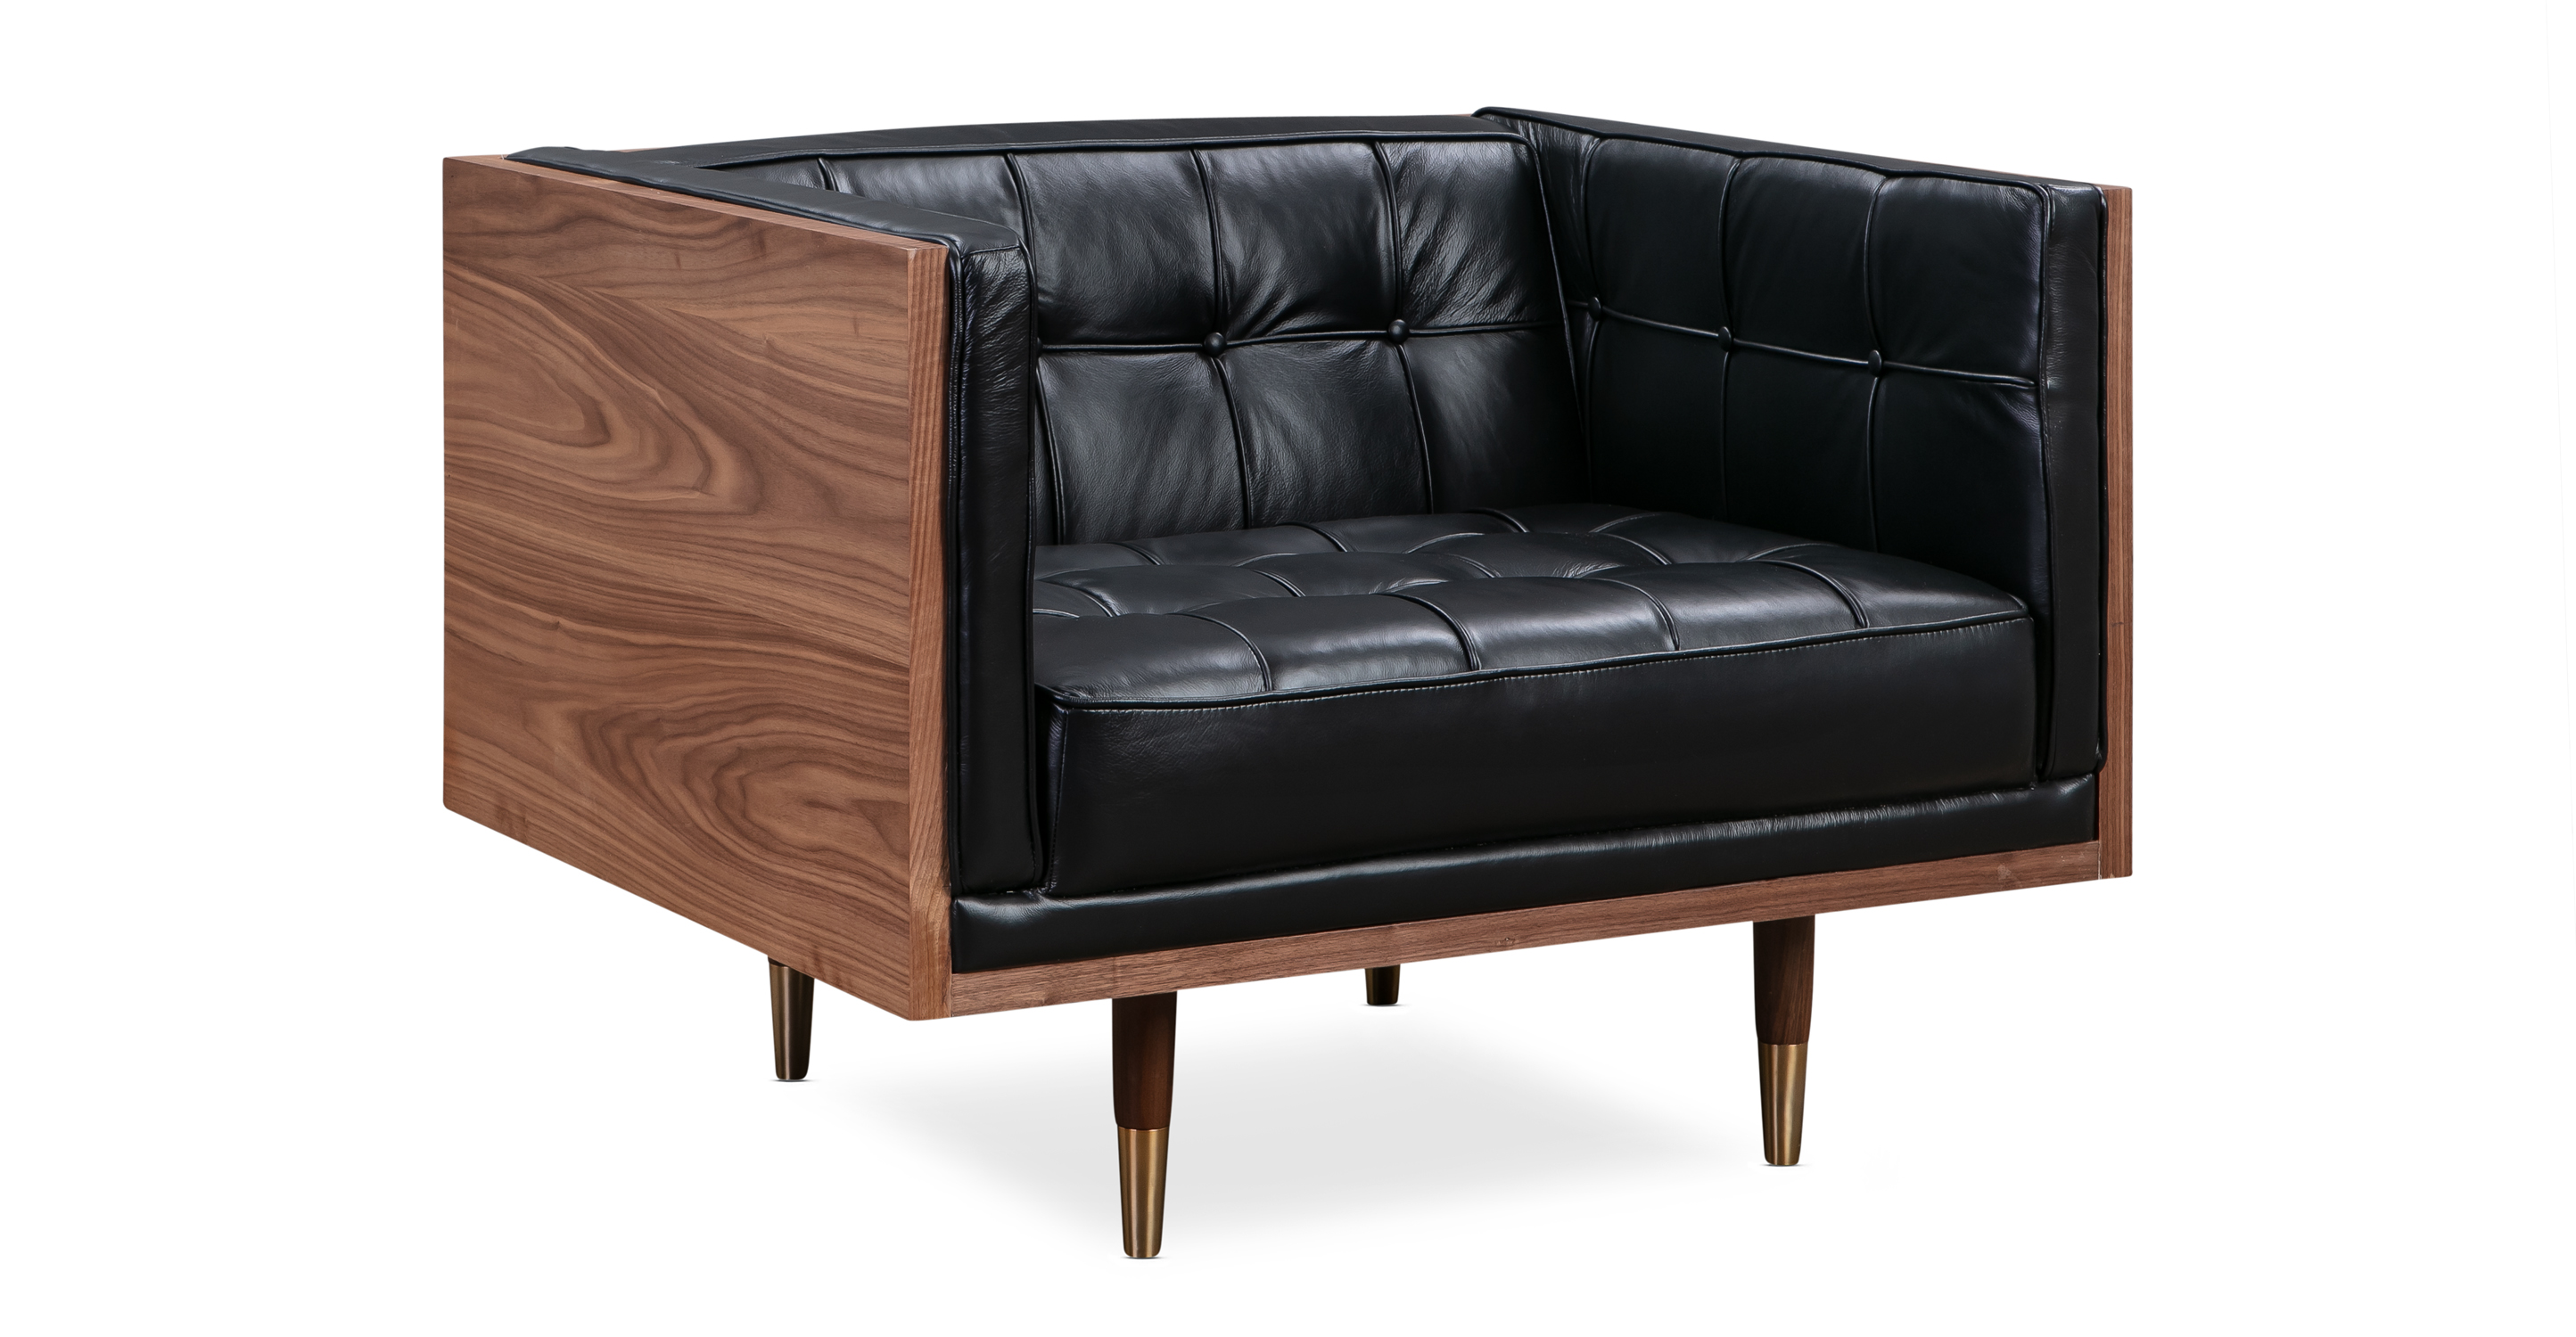 Woodrow Box Leather Chair, Walnut/Black Aniline